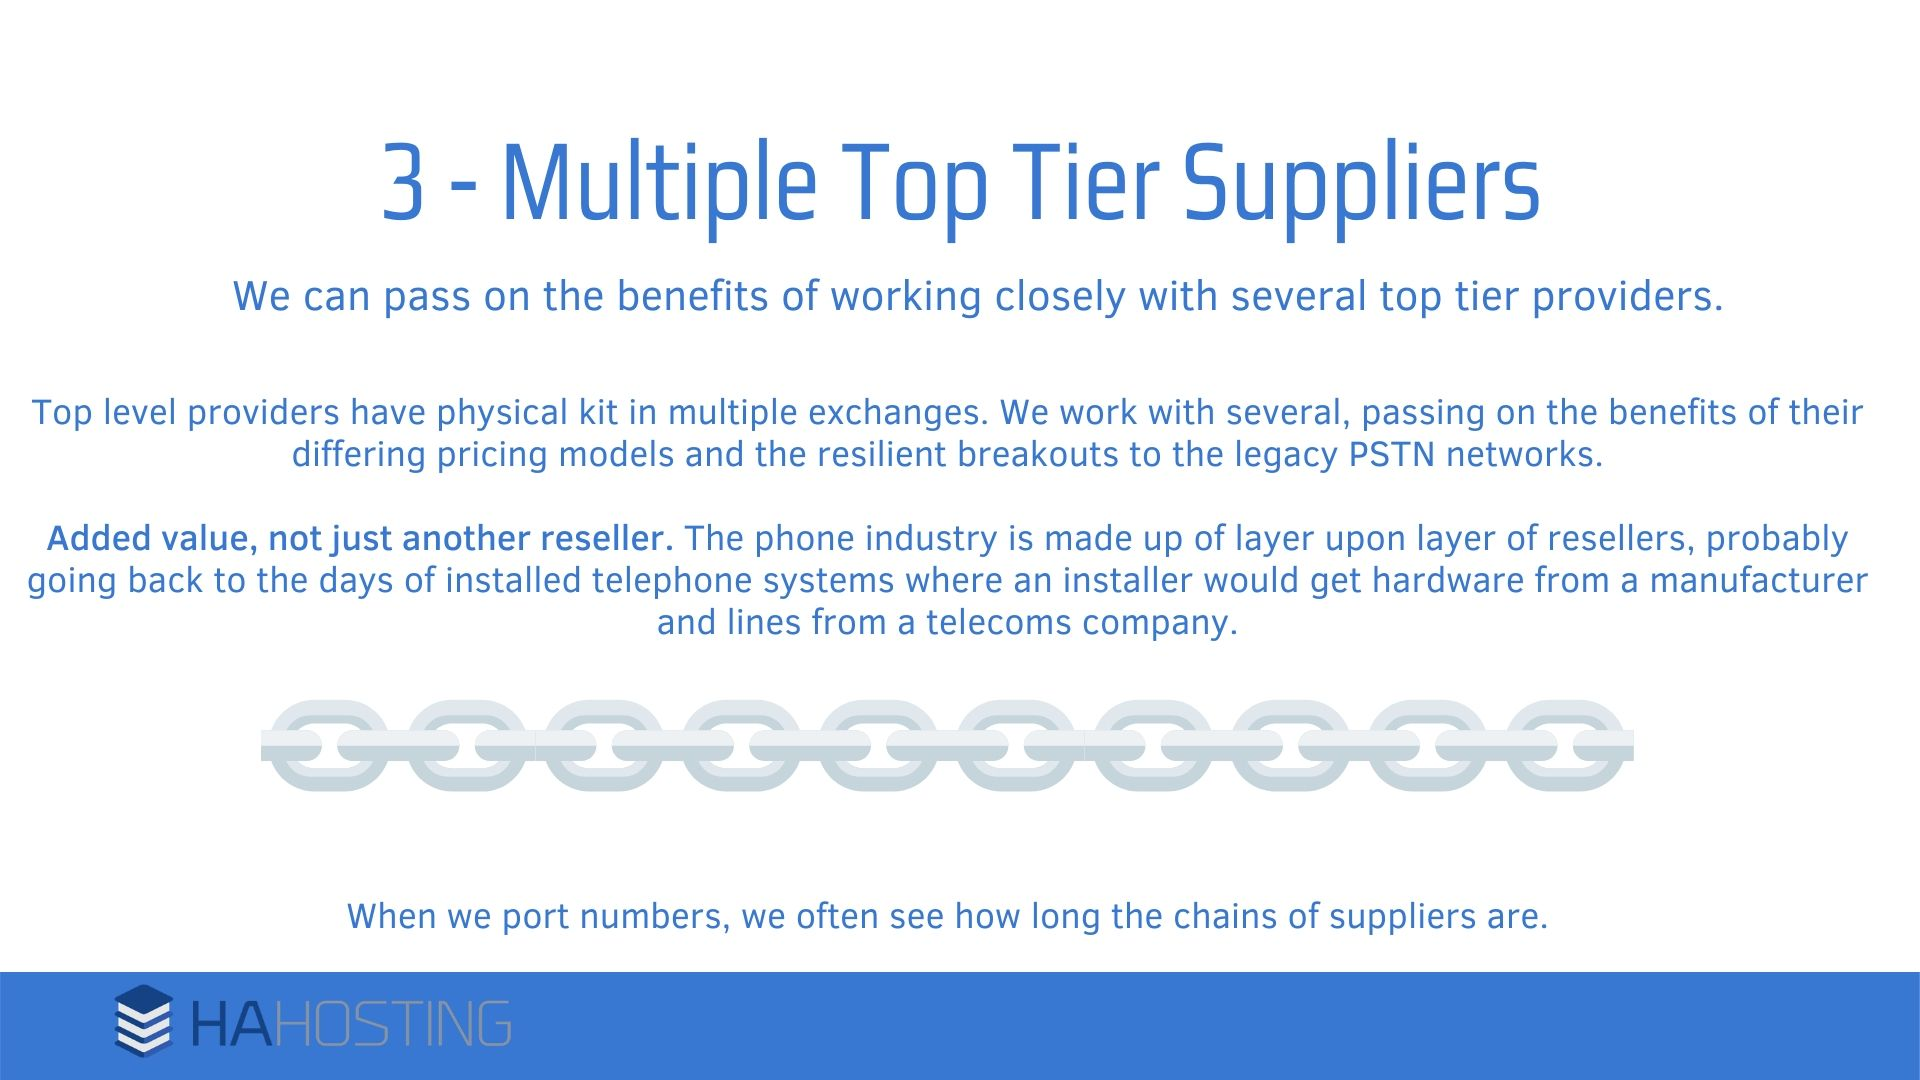 Multiple top tier suppliers - Top level providers have physical kit in multiple exchanges. We work with several, passing on the benefits of their differing pricing models and the resilient breakouts to the legacy PSTN networks. Added value, not just another reseller. The phone industry is made up of layer upon layer of resellers, probably going back to the days of installed telephone systems where an installer would get hardware from a manufacturer and lines from a telecoms company. When we port numbers, we often see how long the chains of suppliers are.